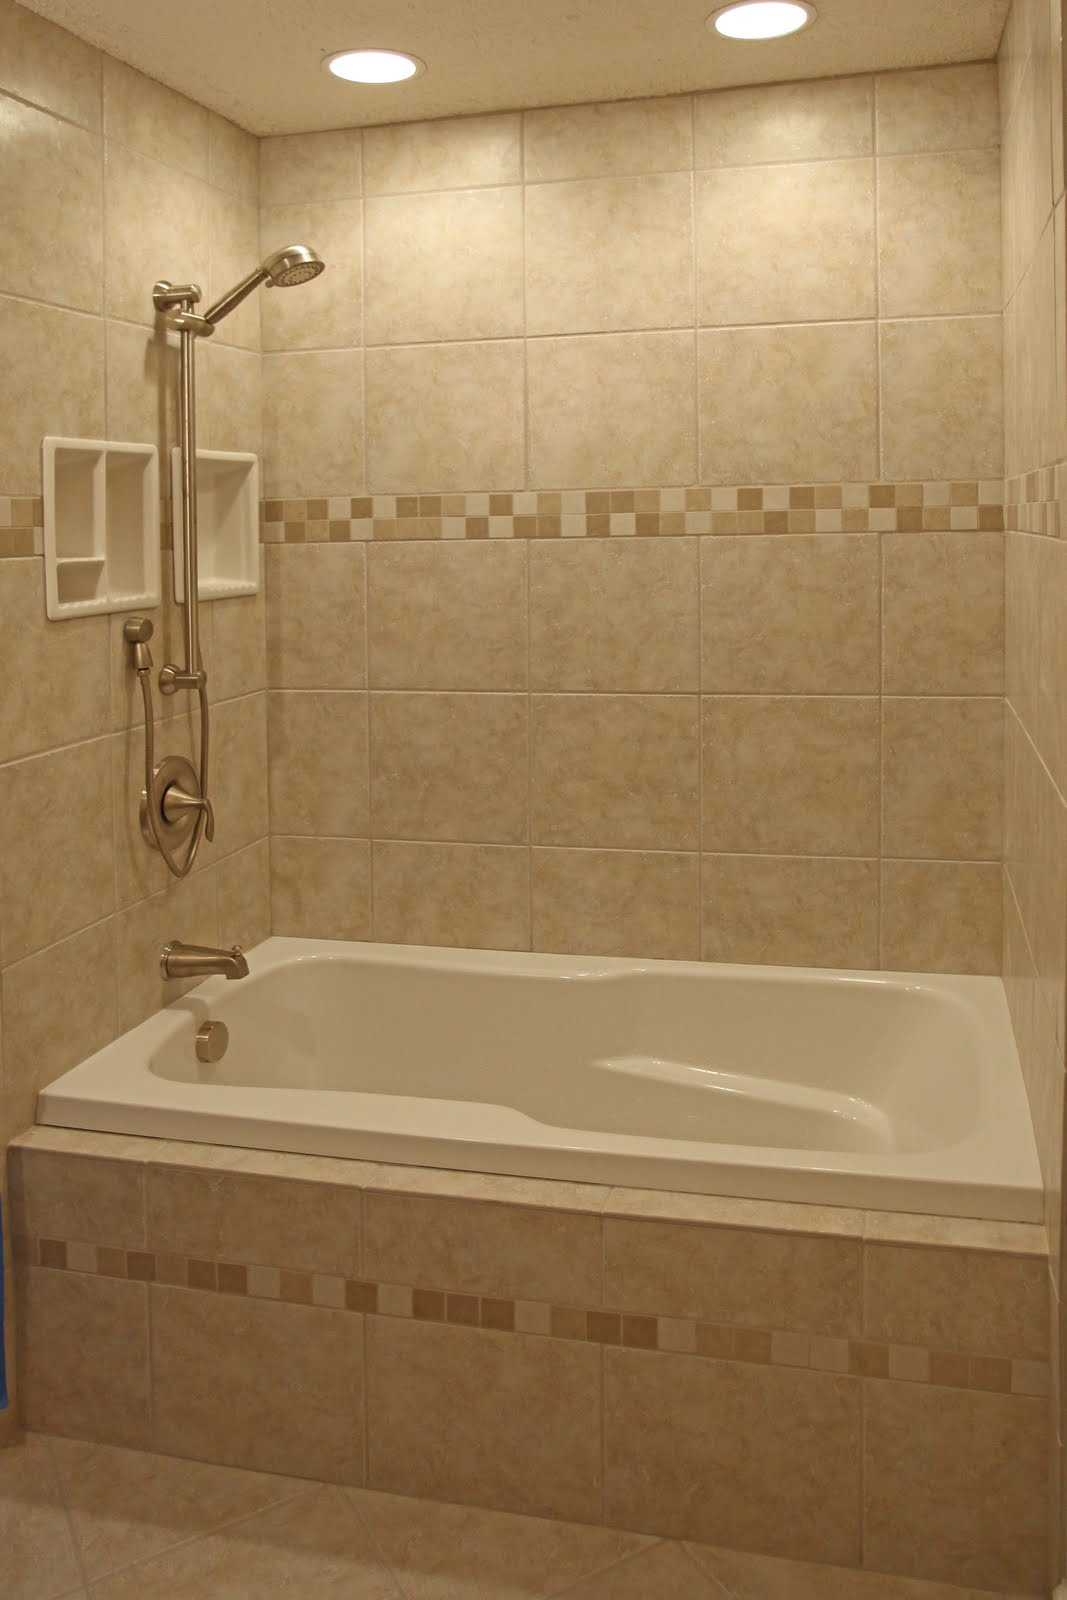 Bathroom remodeling design ideas tile shower niches for Bathroom remodel ideas with bathtub